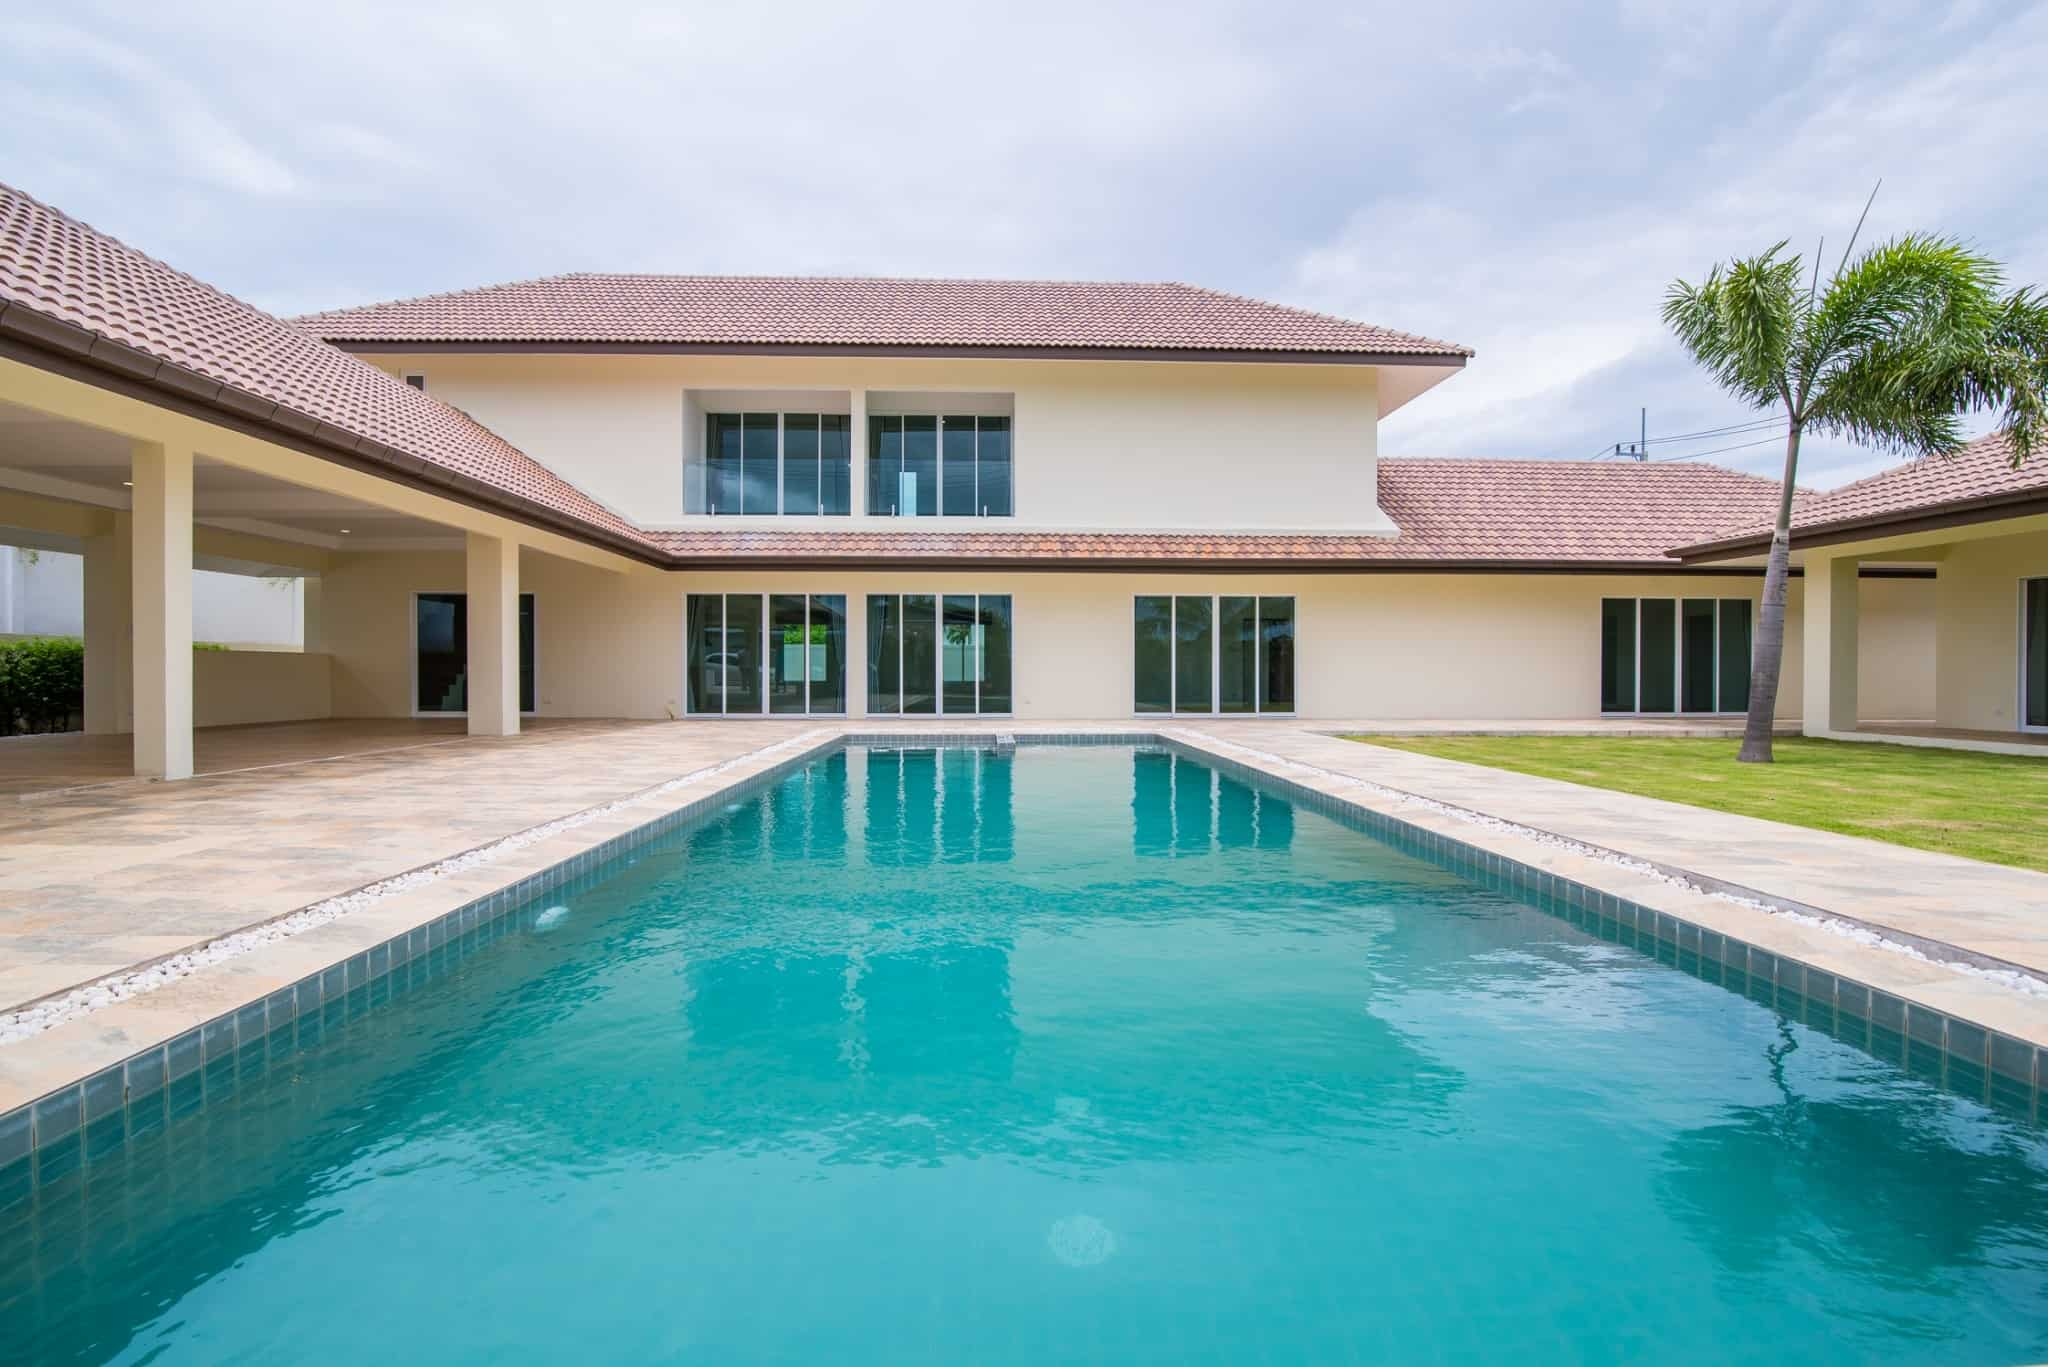 HUA HIN REAL ESTATE FOR SALE SOI 88 | Hua Hin Real Estate | Houses For Sale Hua Hin | Luxury Homes Under 8M THB | Property For Sale Hua Hin